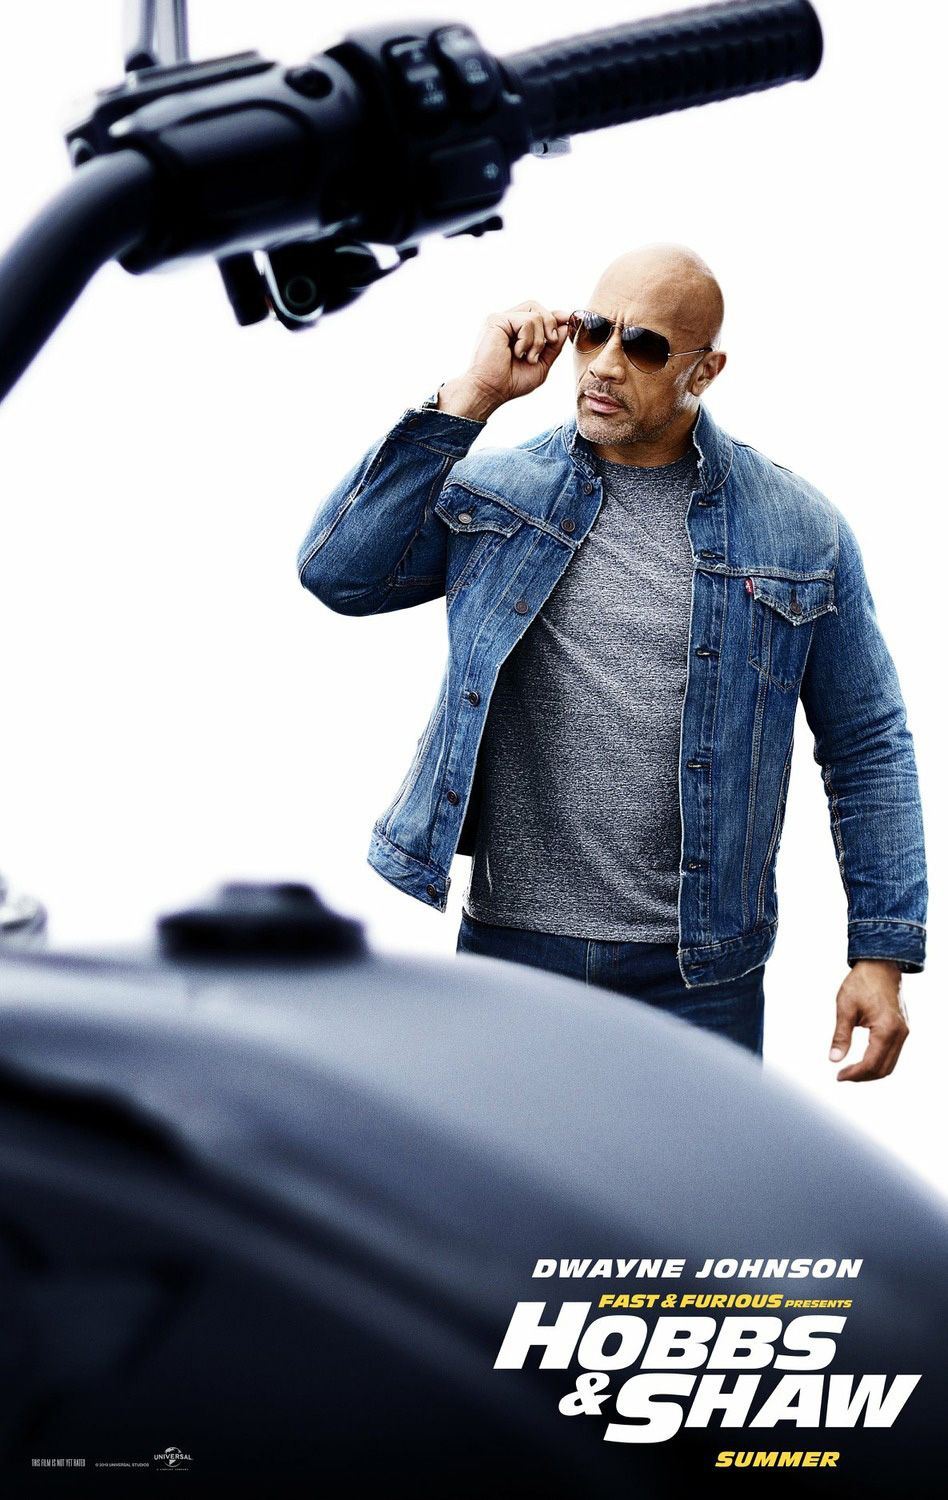 Fast And Furious Photo Fast Furious Presents Hobbs Shaw Poster Dwayne Johnson As Luke Hobbs Fast And Furious Dwayne Johnson Full Movies